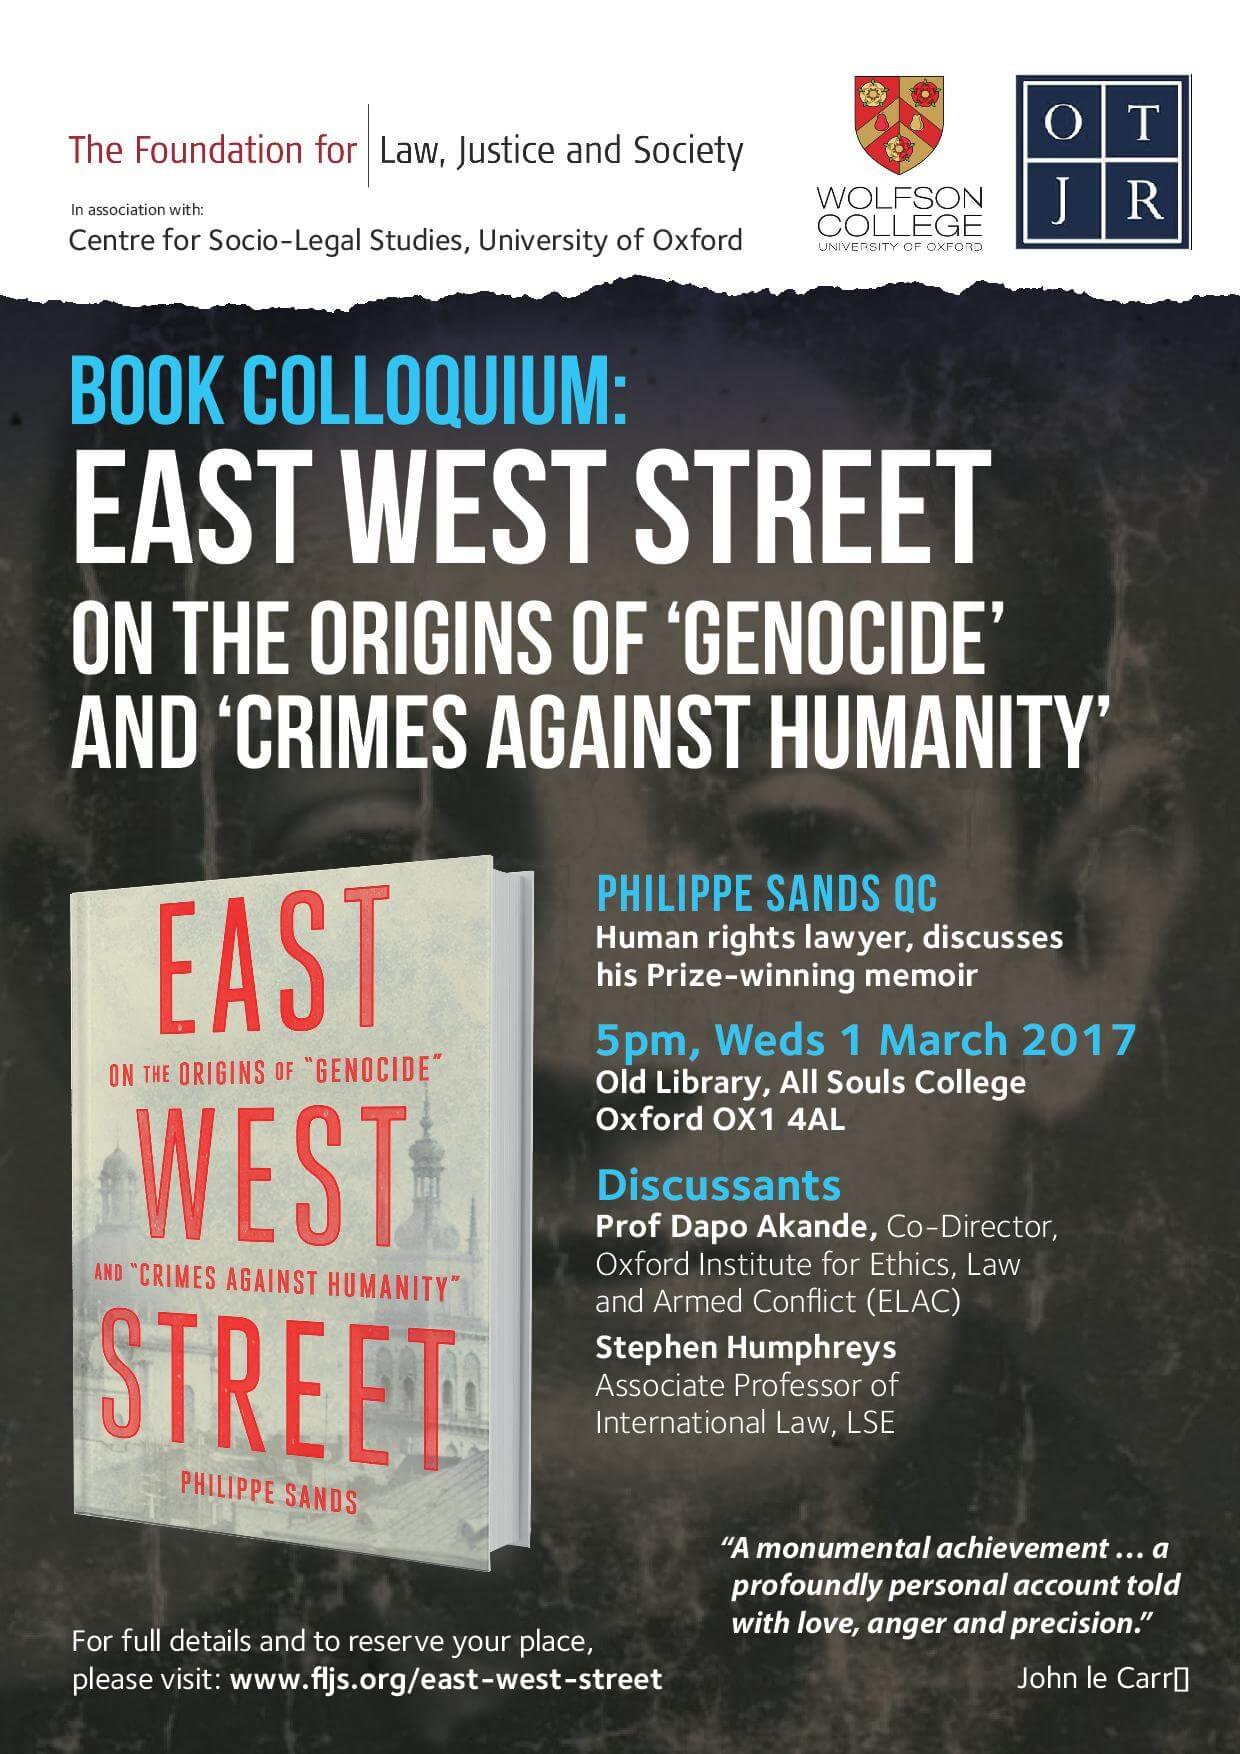 Book Colloquium: East West Street: On the Origins of 'Genocide' and 'Crimes against Humanity'